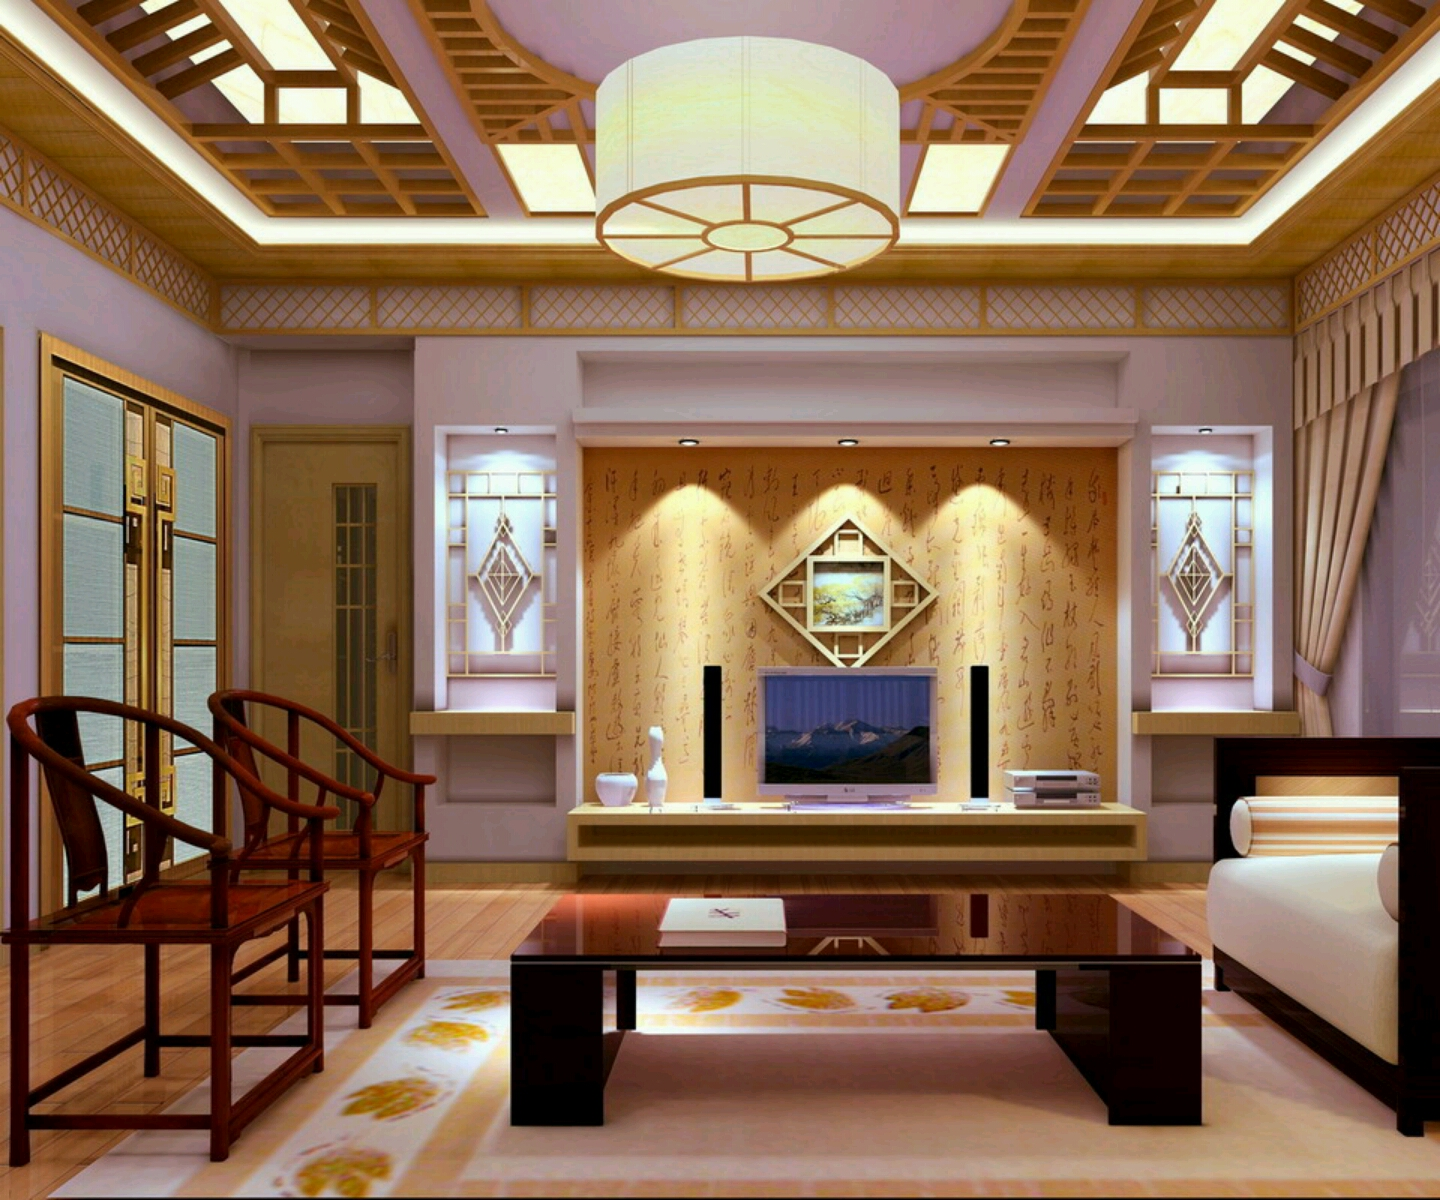 New home designs latest homes interior designs studyrooms Home interior ideas